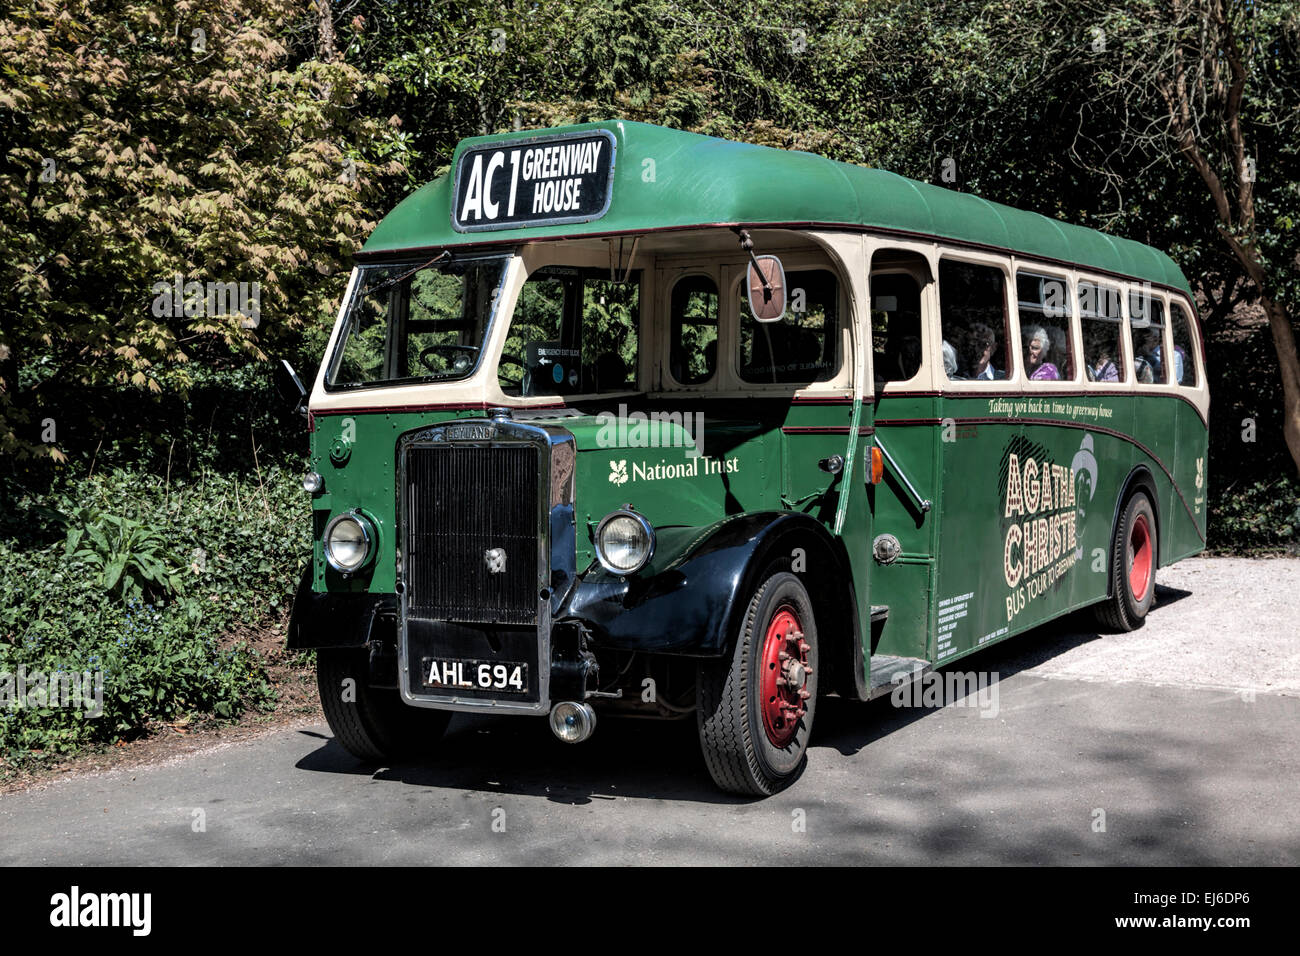 Vintage  bus for transport to Greenway, the late Agatha Christie's summer residence, Devon, UK. - Stock Image